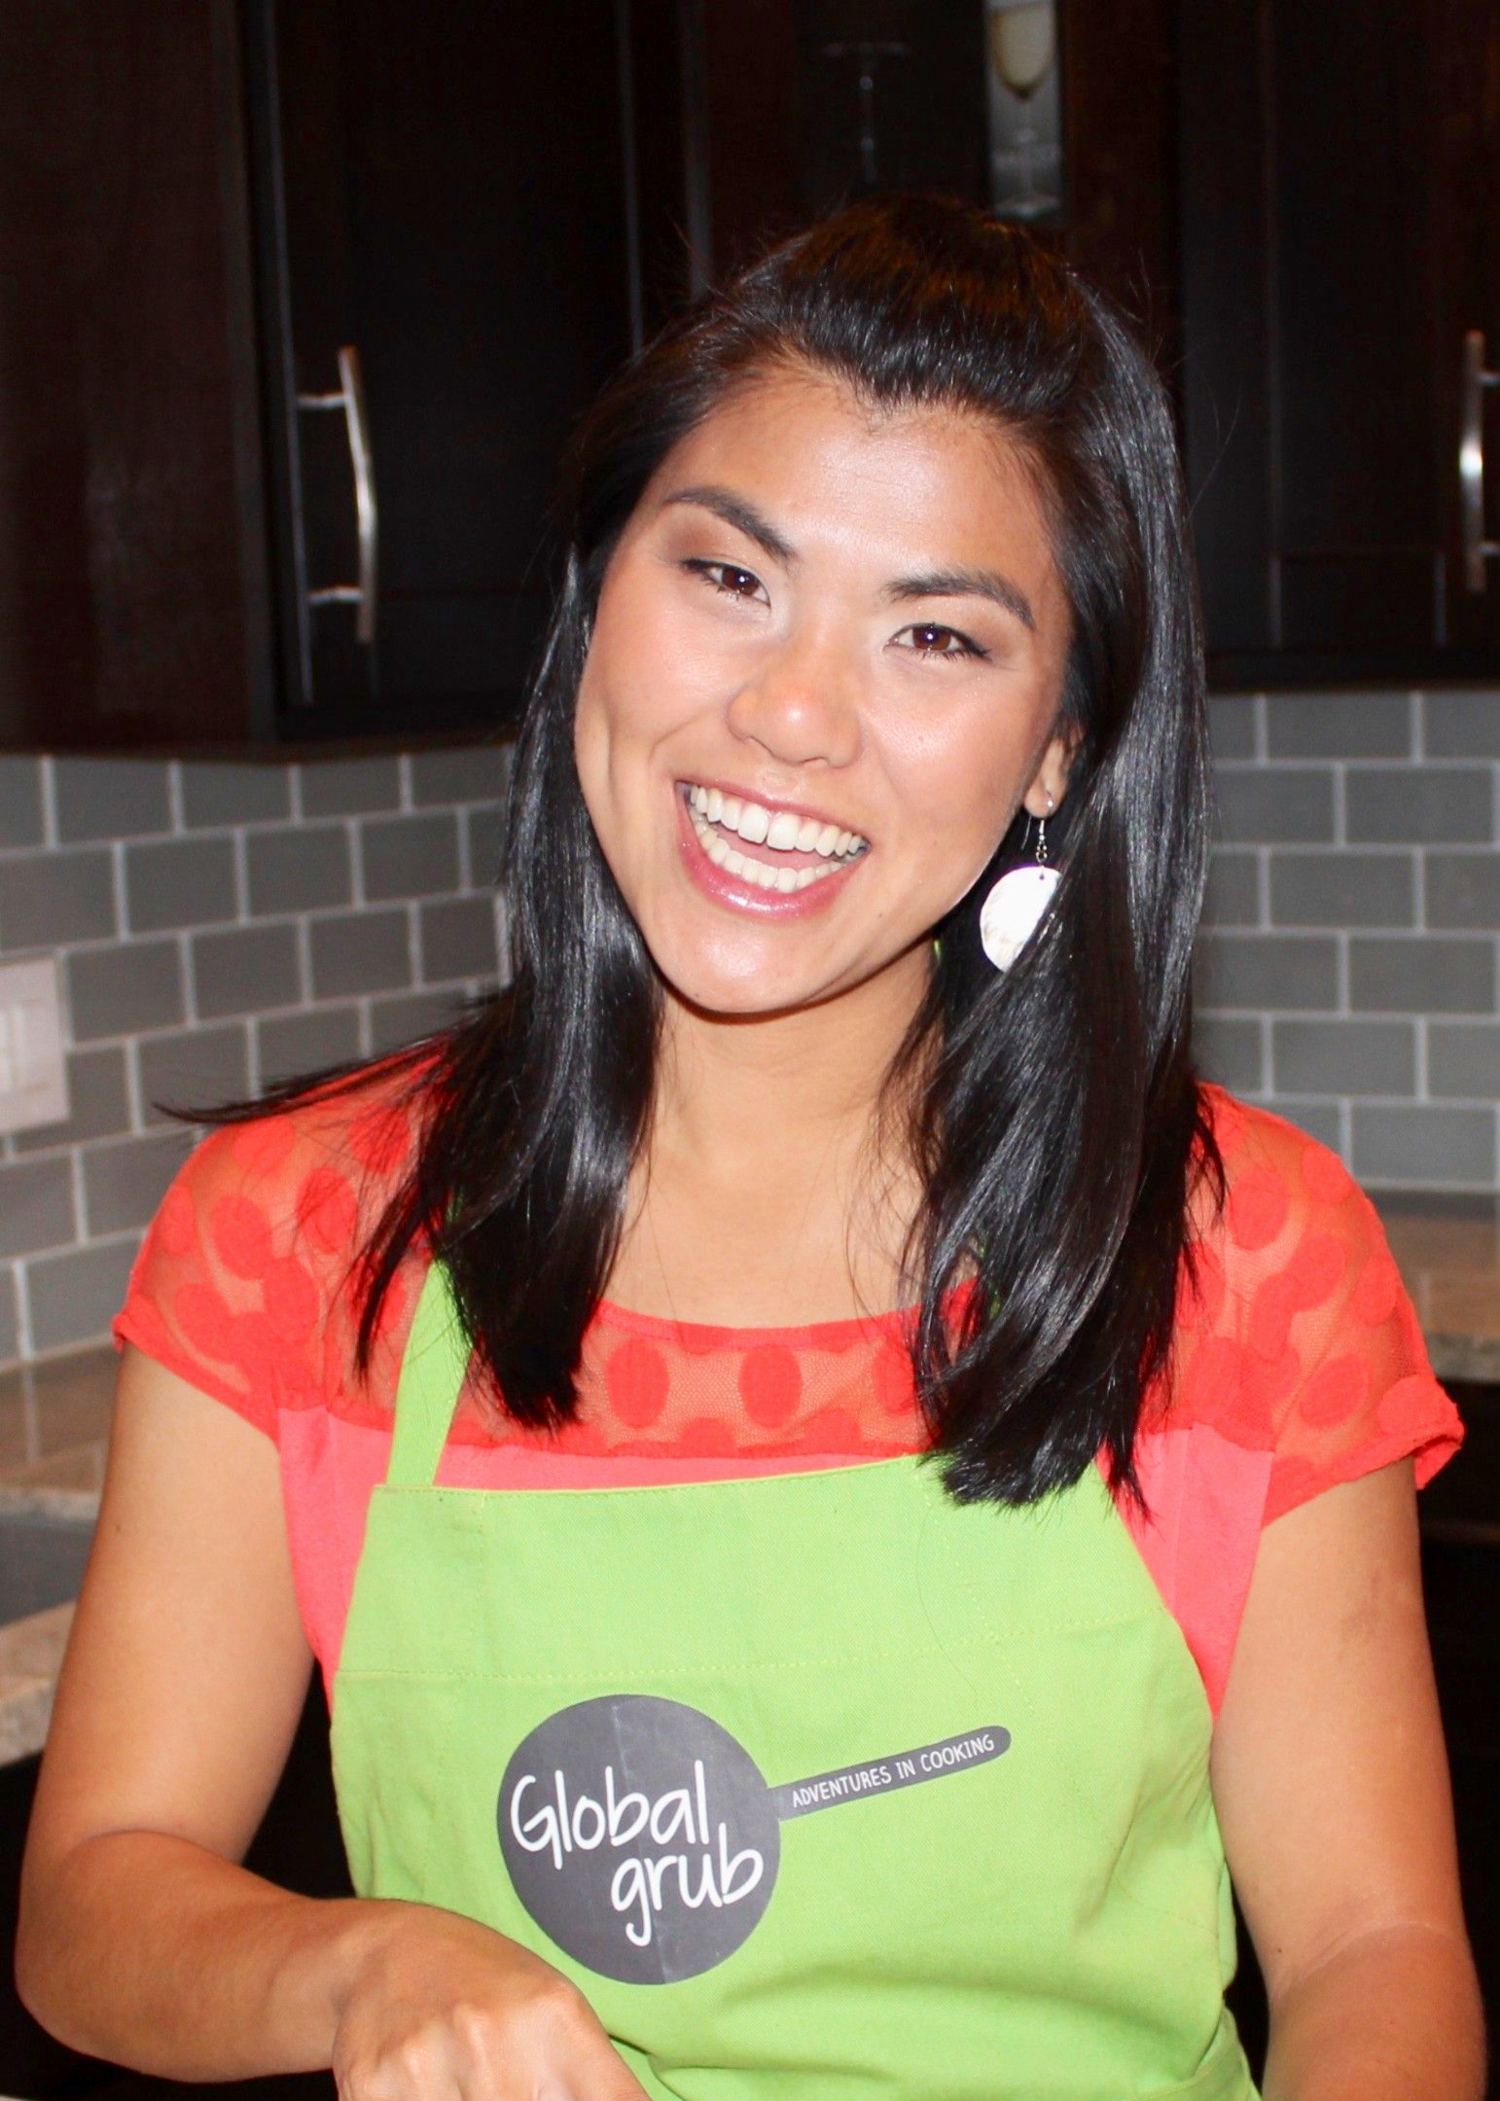 Carley Sheehy, founder and owner of Global Grub, an at-home cooking kit and ICA Accelerator company.